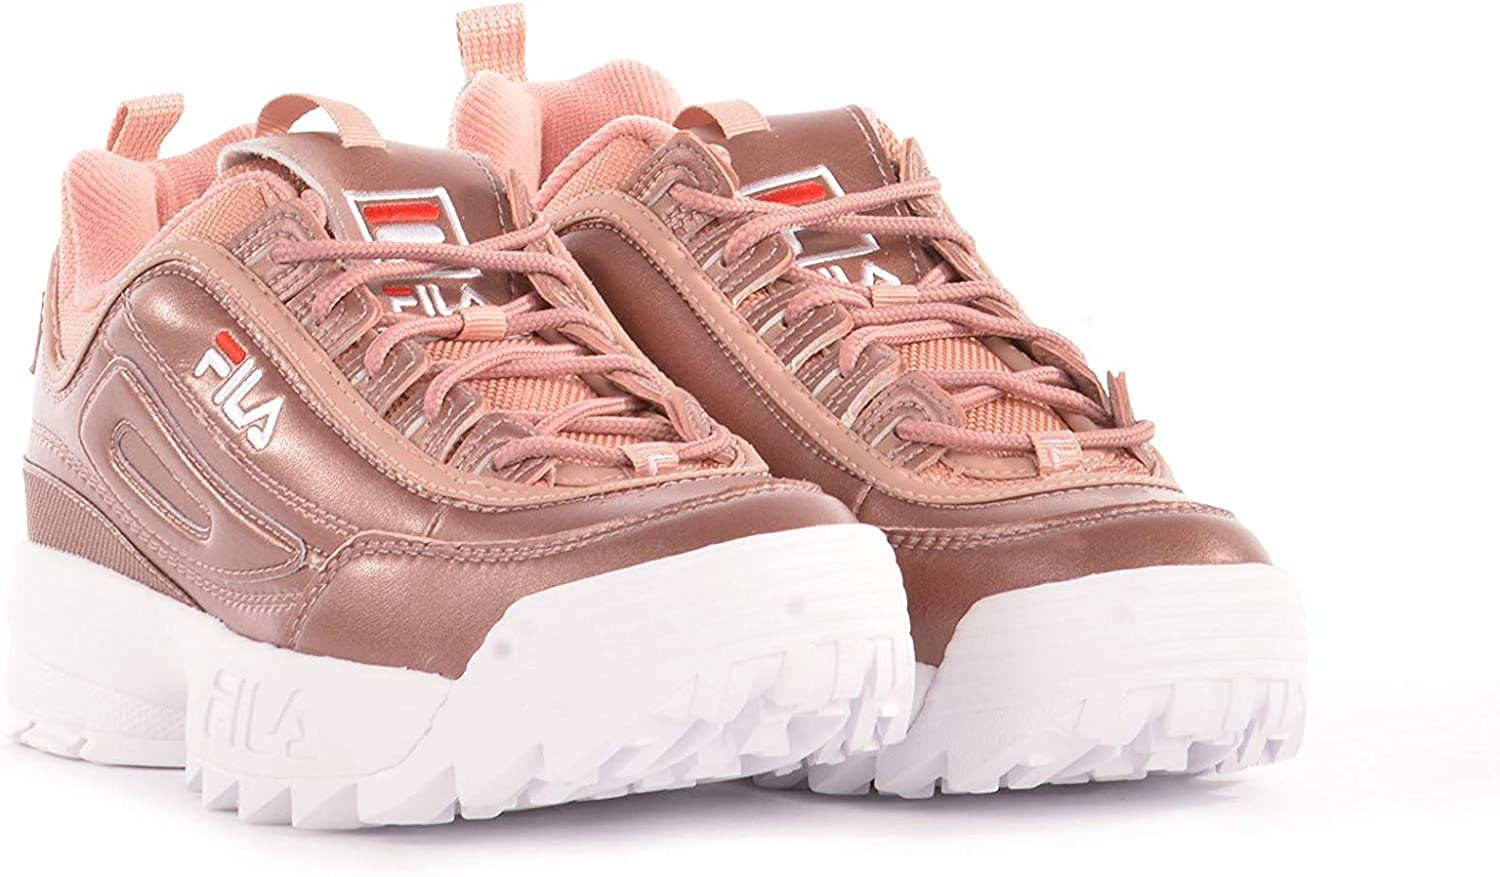 Fila Disruptor MM Low Ash Rosegold 101044270X, Basket